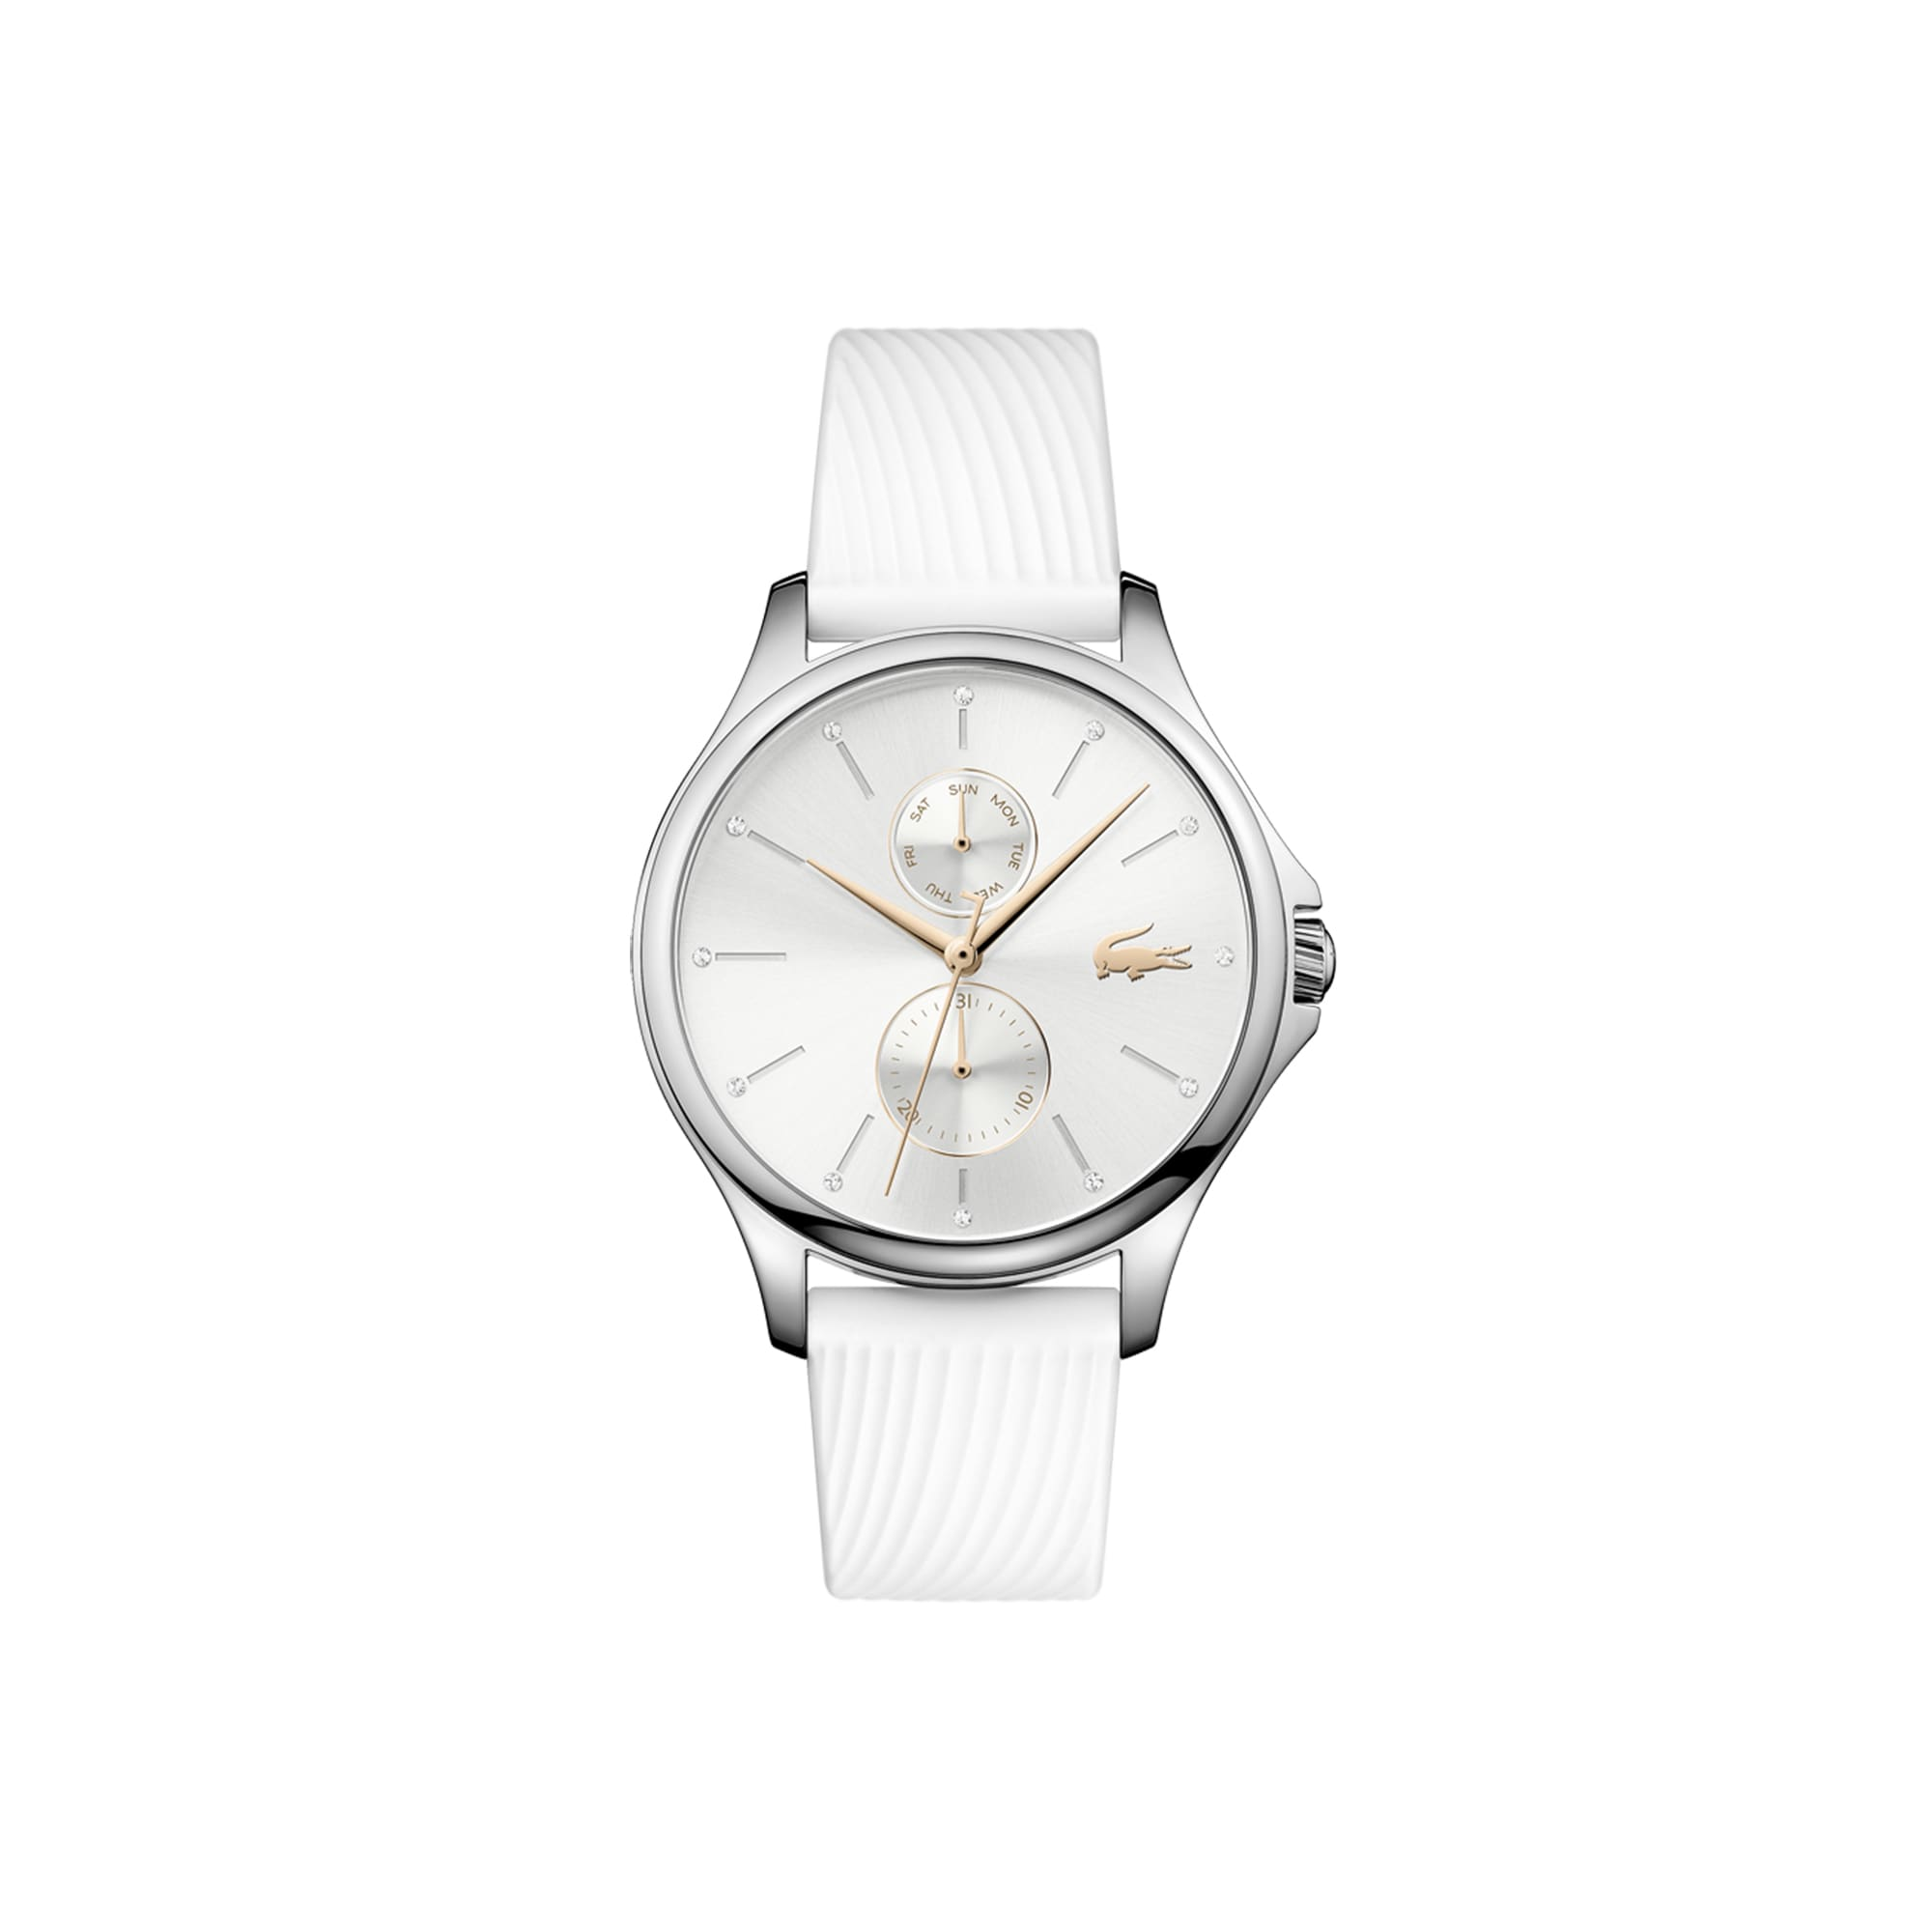 Women's Kea Multifunctions Watch with White Silicone Strap